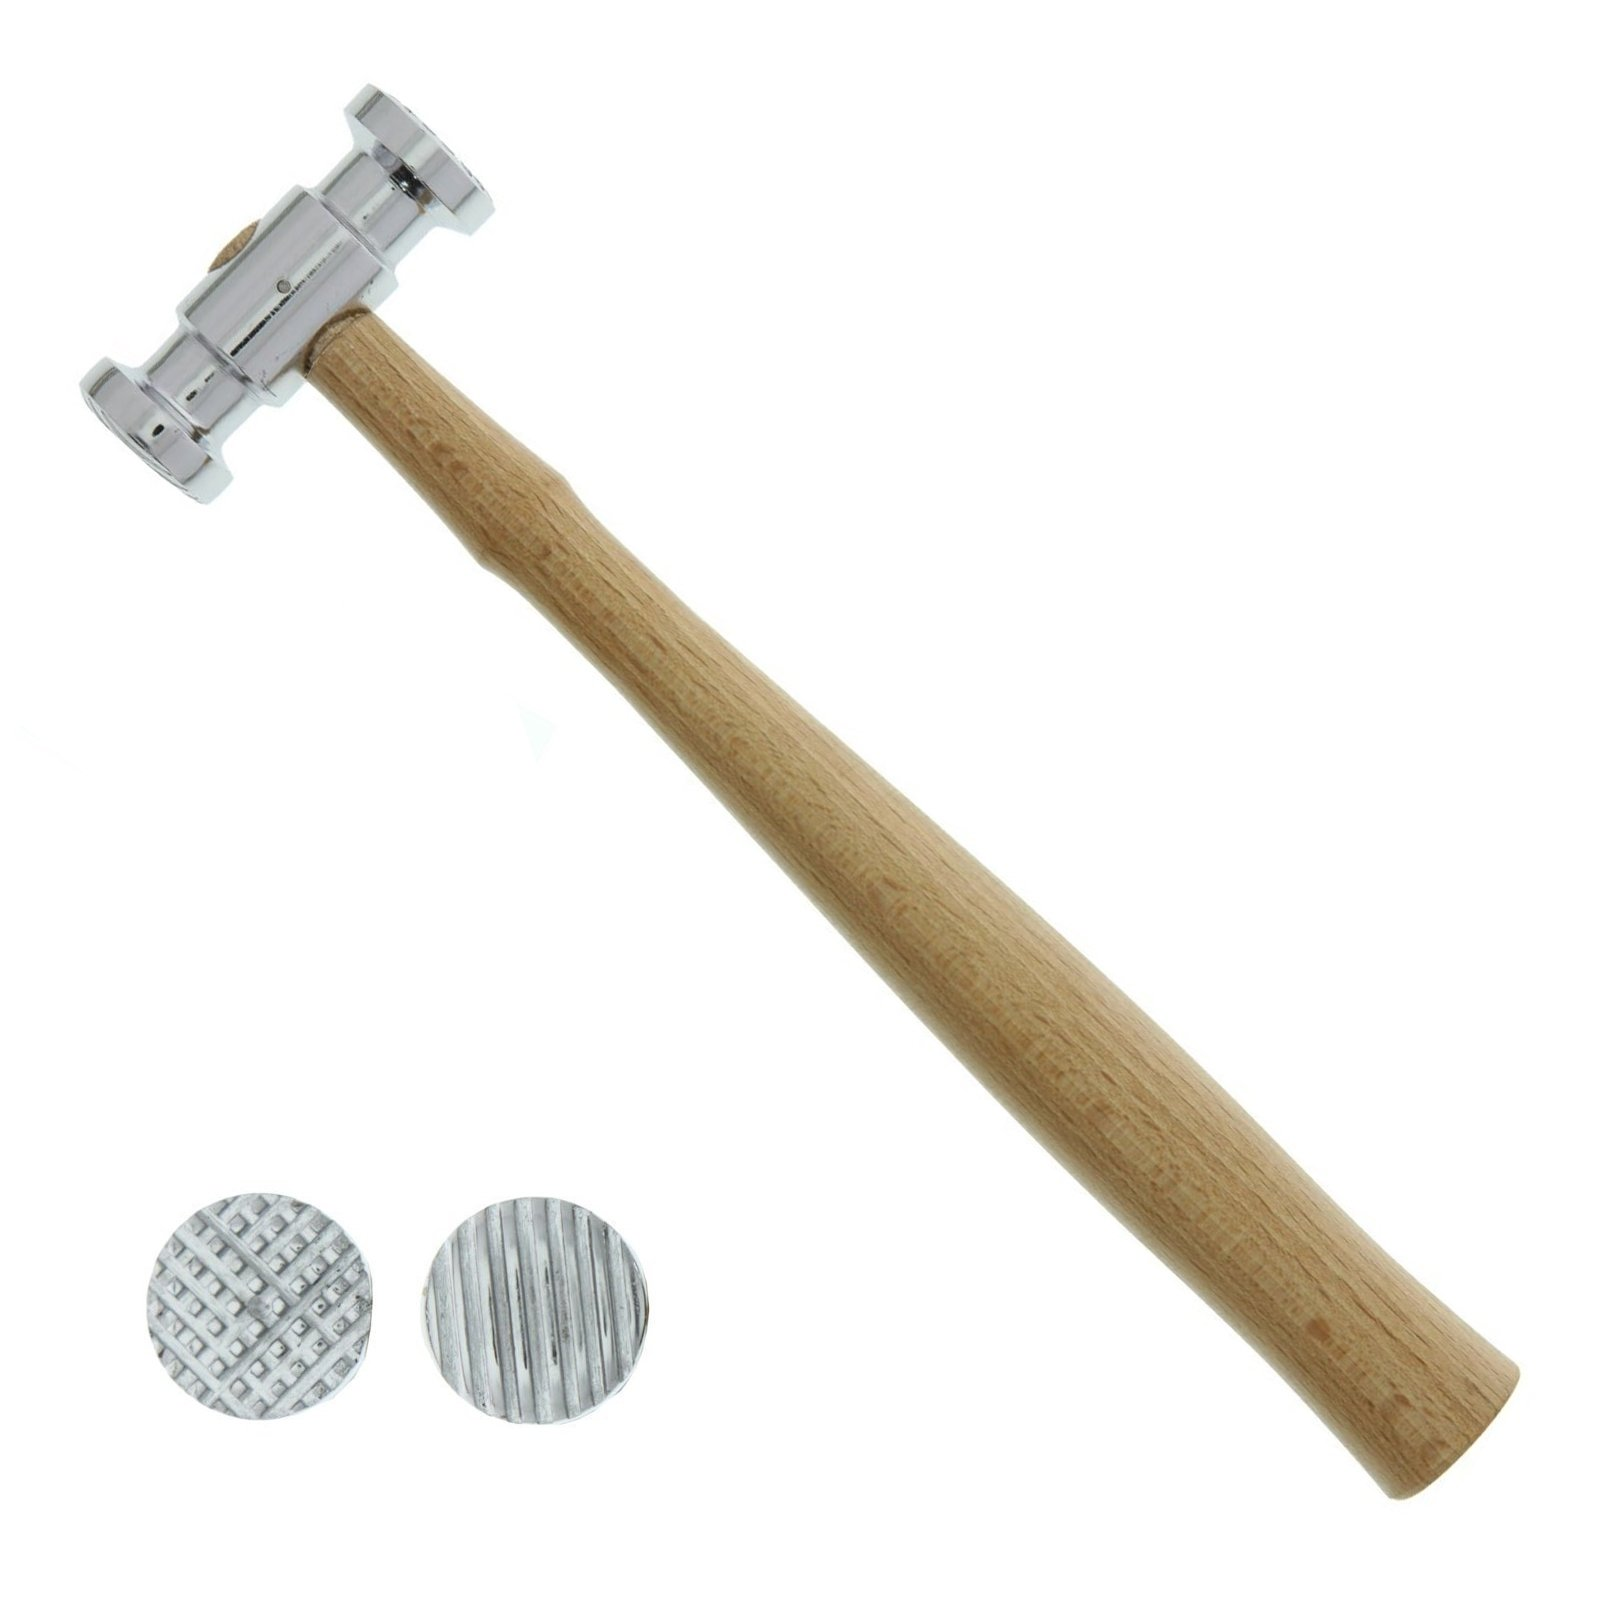 Universal Tool Texturising Hammer Dual Face Square Stripe Patterns